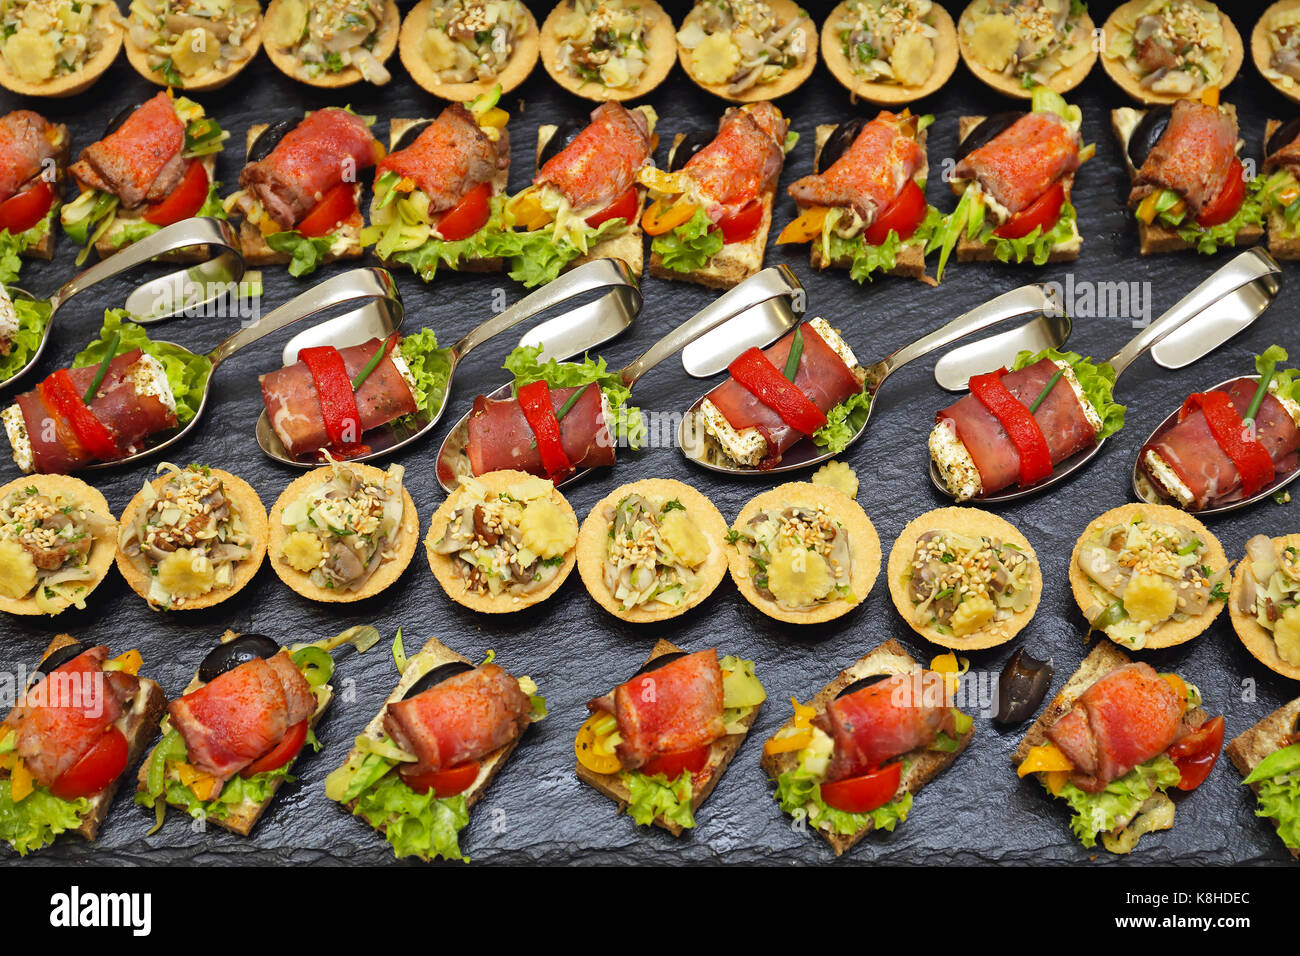 Decorative Garnished Modern Canapes Served at Party - Stock Image